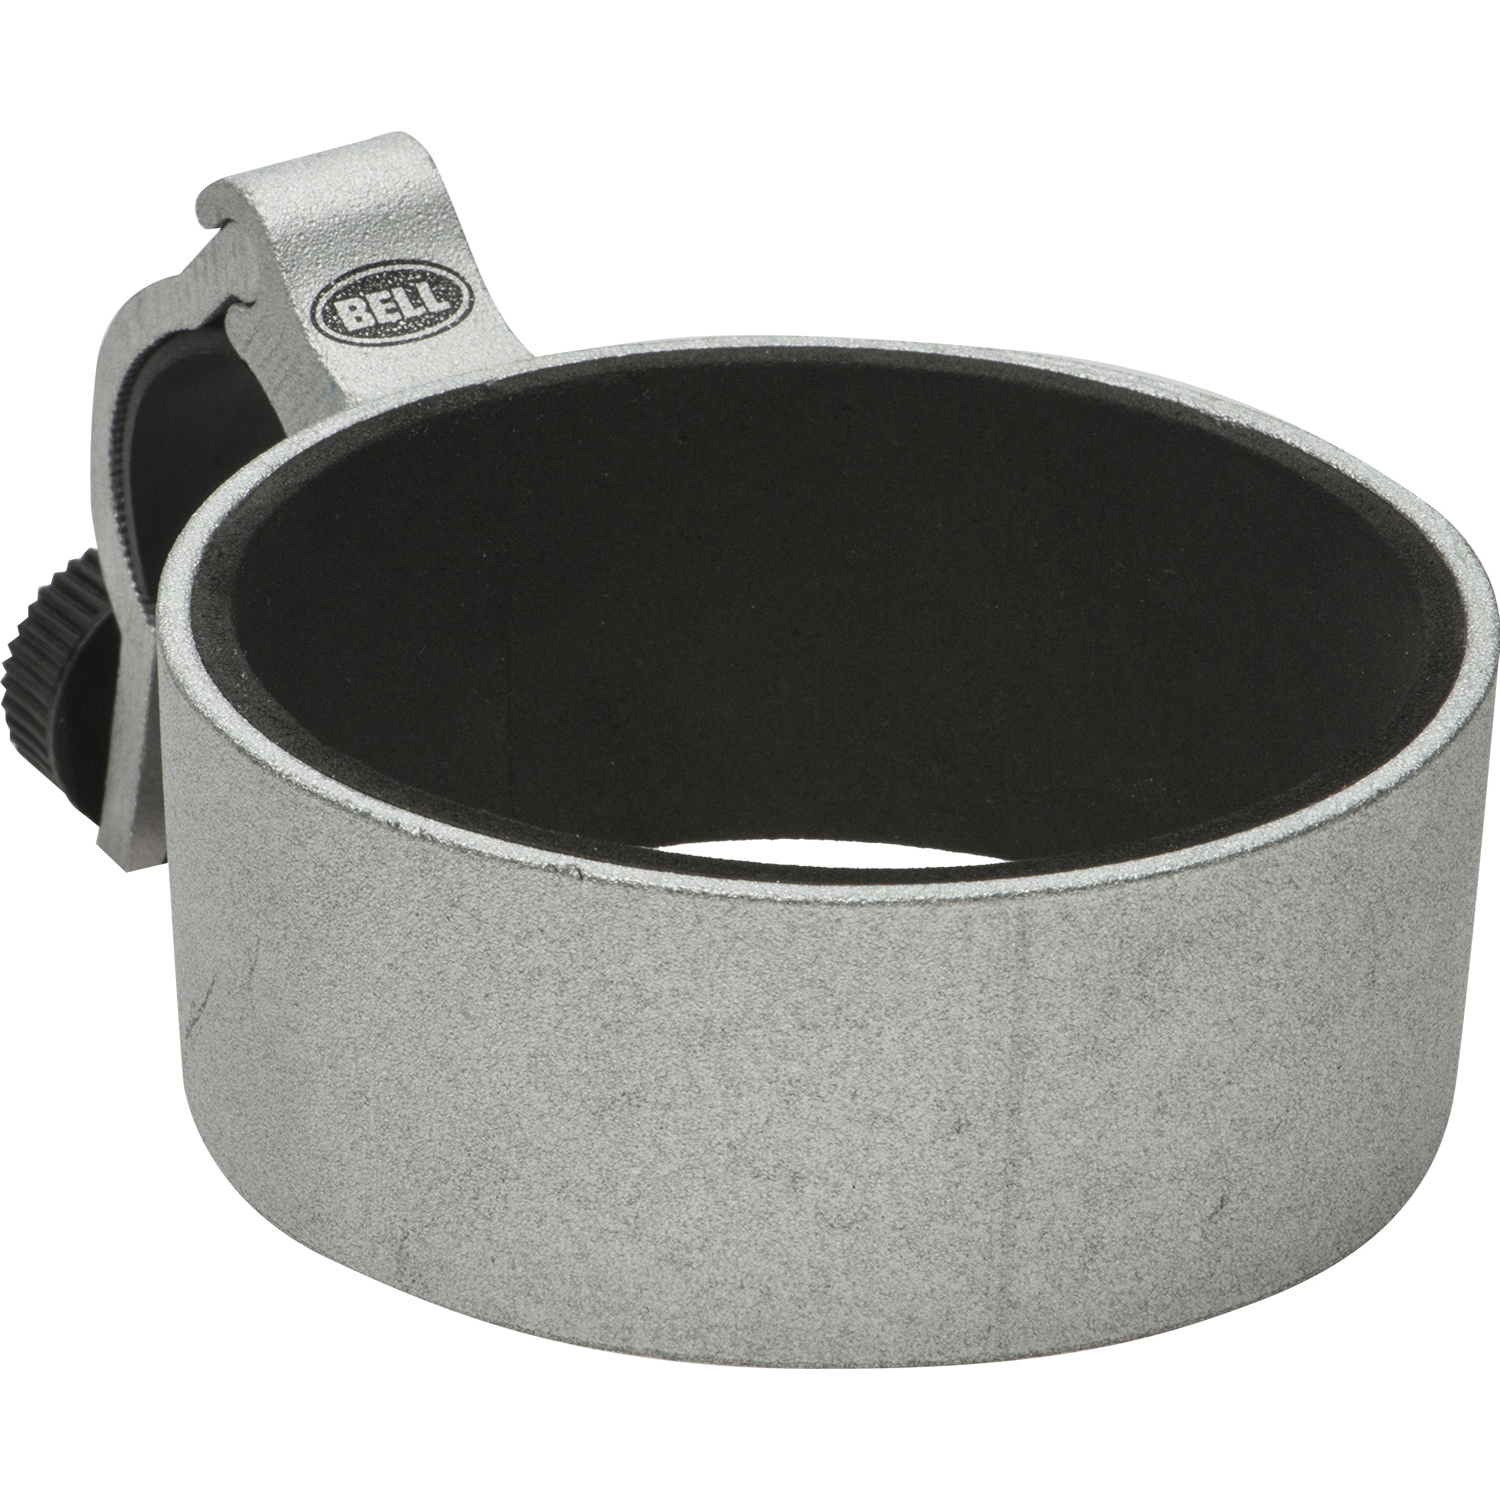 Bell Sports Clinch 350 Bicycle Cup Holder, Silver